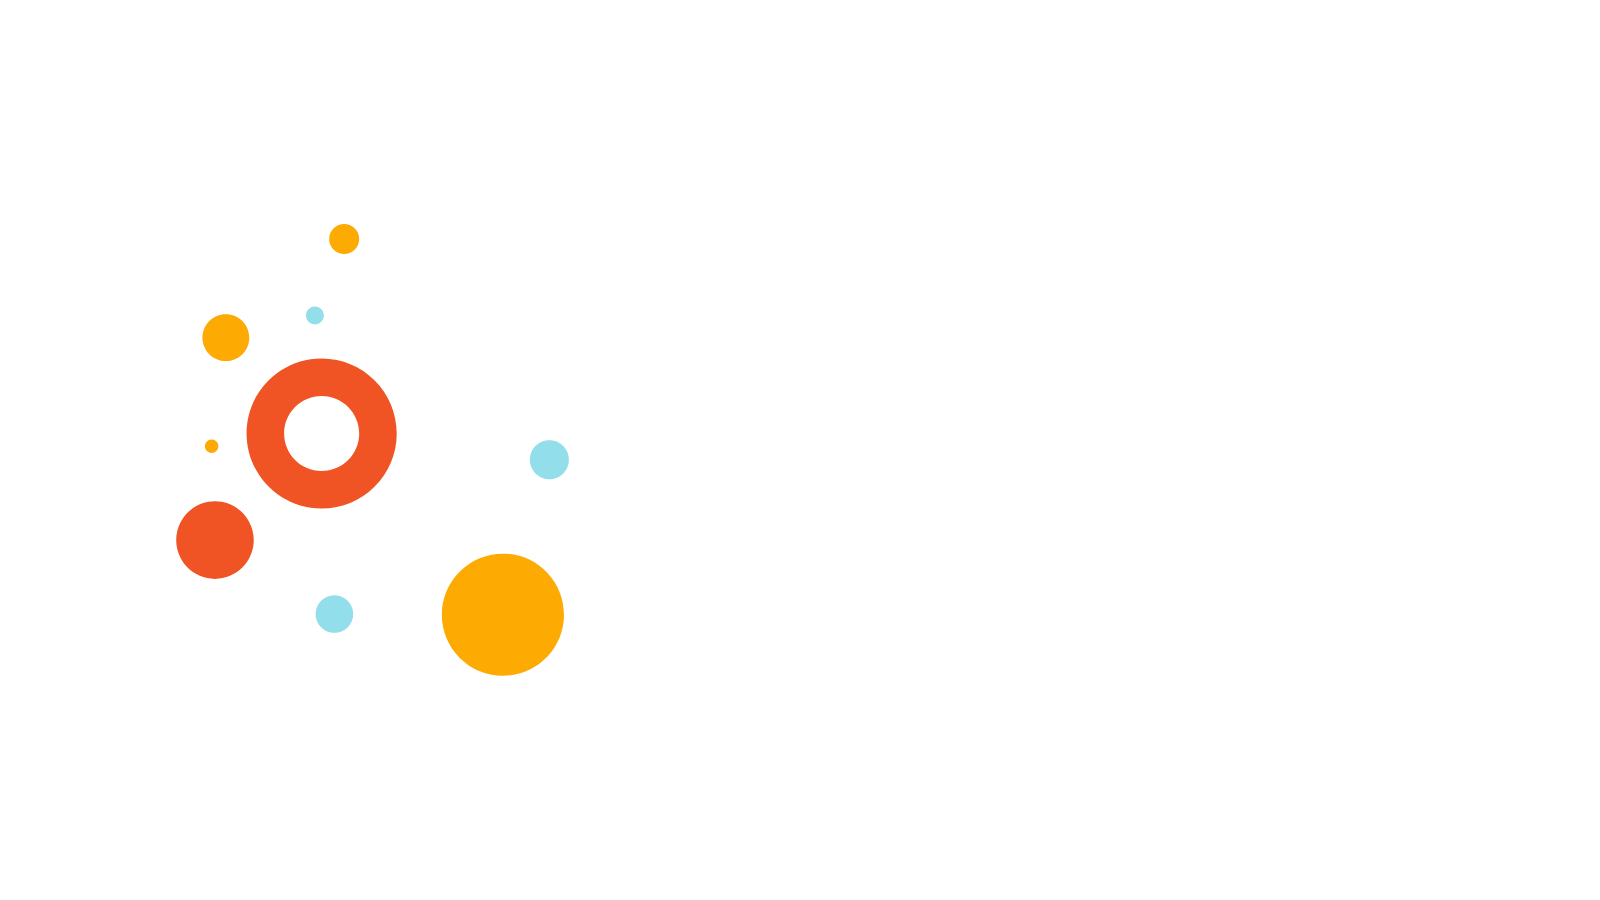 International Climate Income Alliance